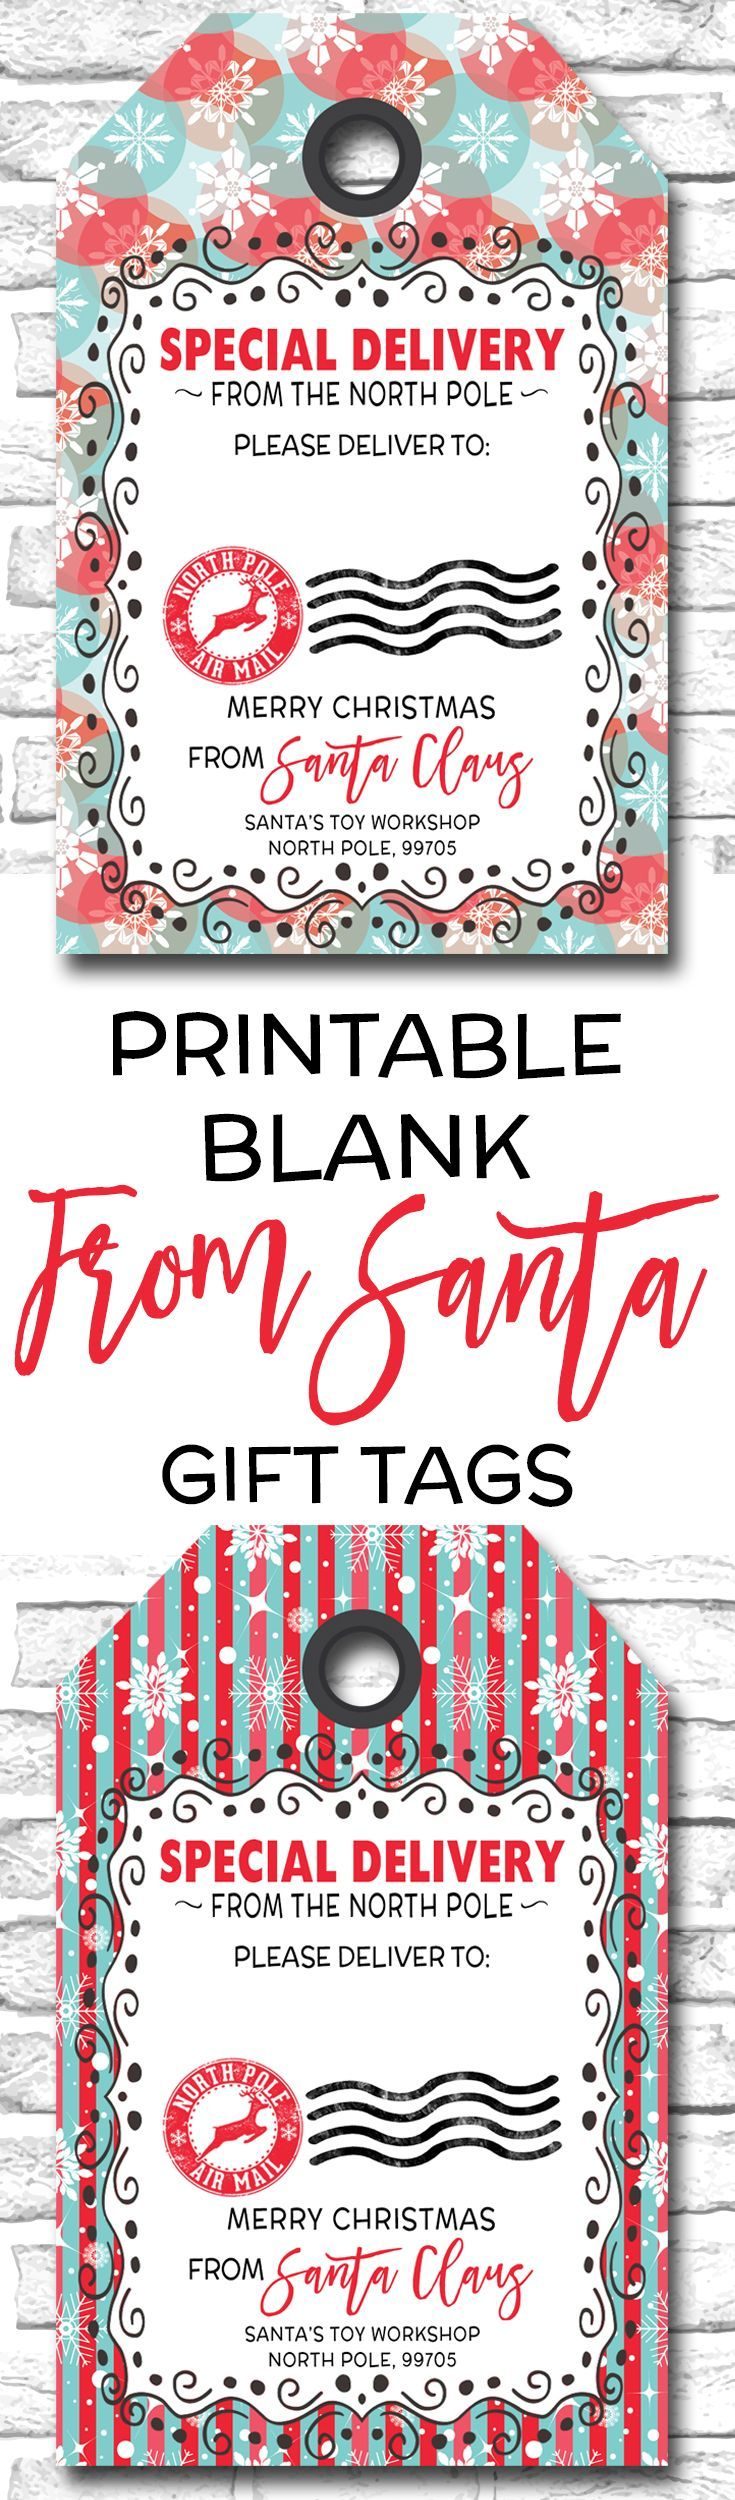 Printable BLANK From Santa Gift Tags https://www.etsy.com/ca/listing/483557569/santa-gift-tags-blank-from-santa-gift